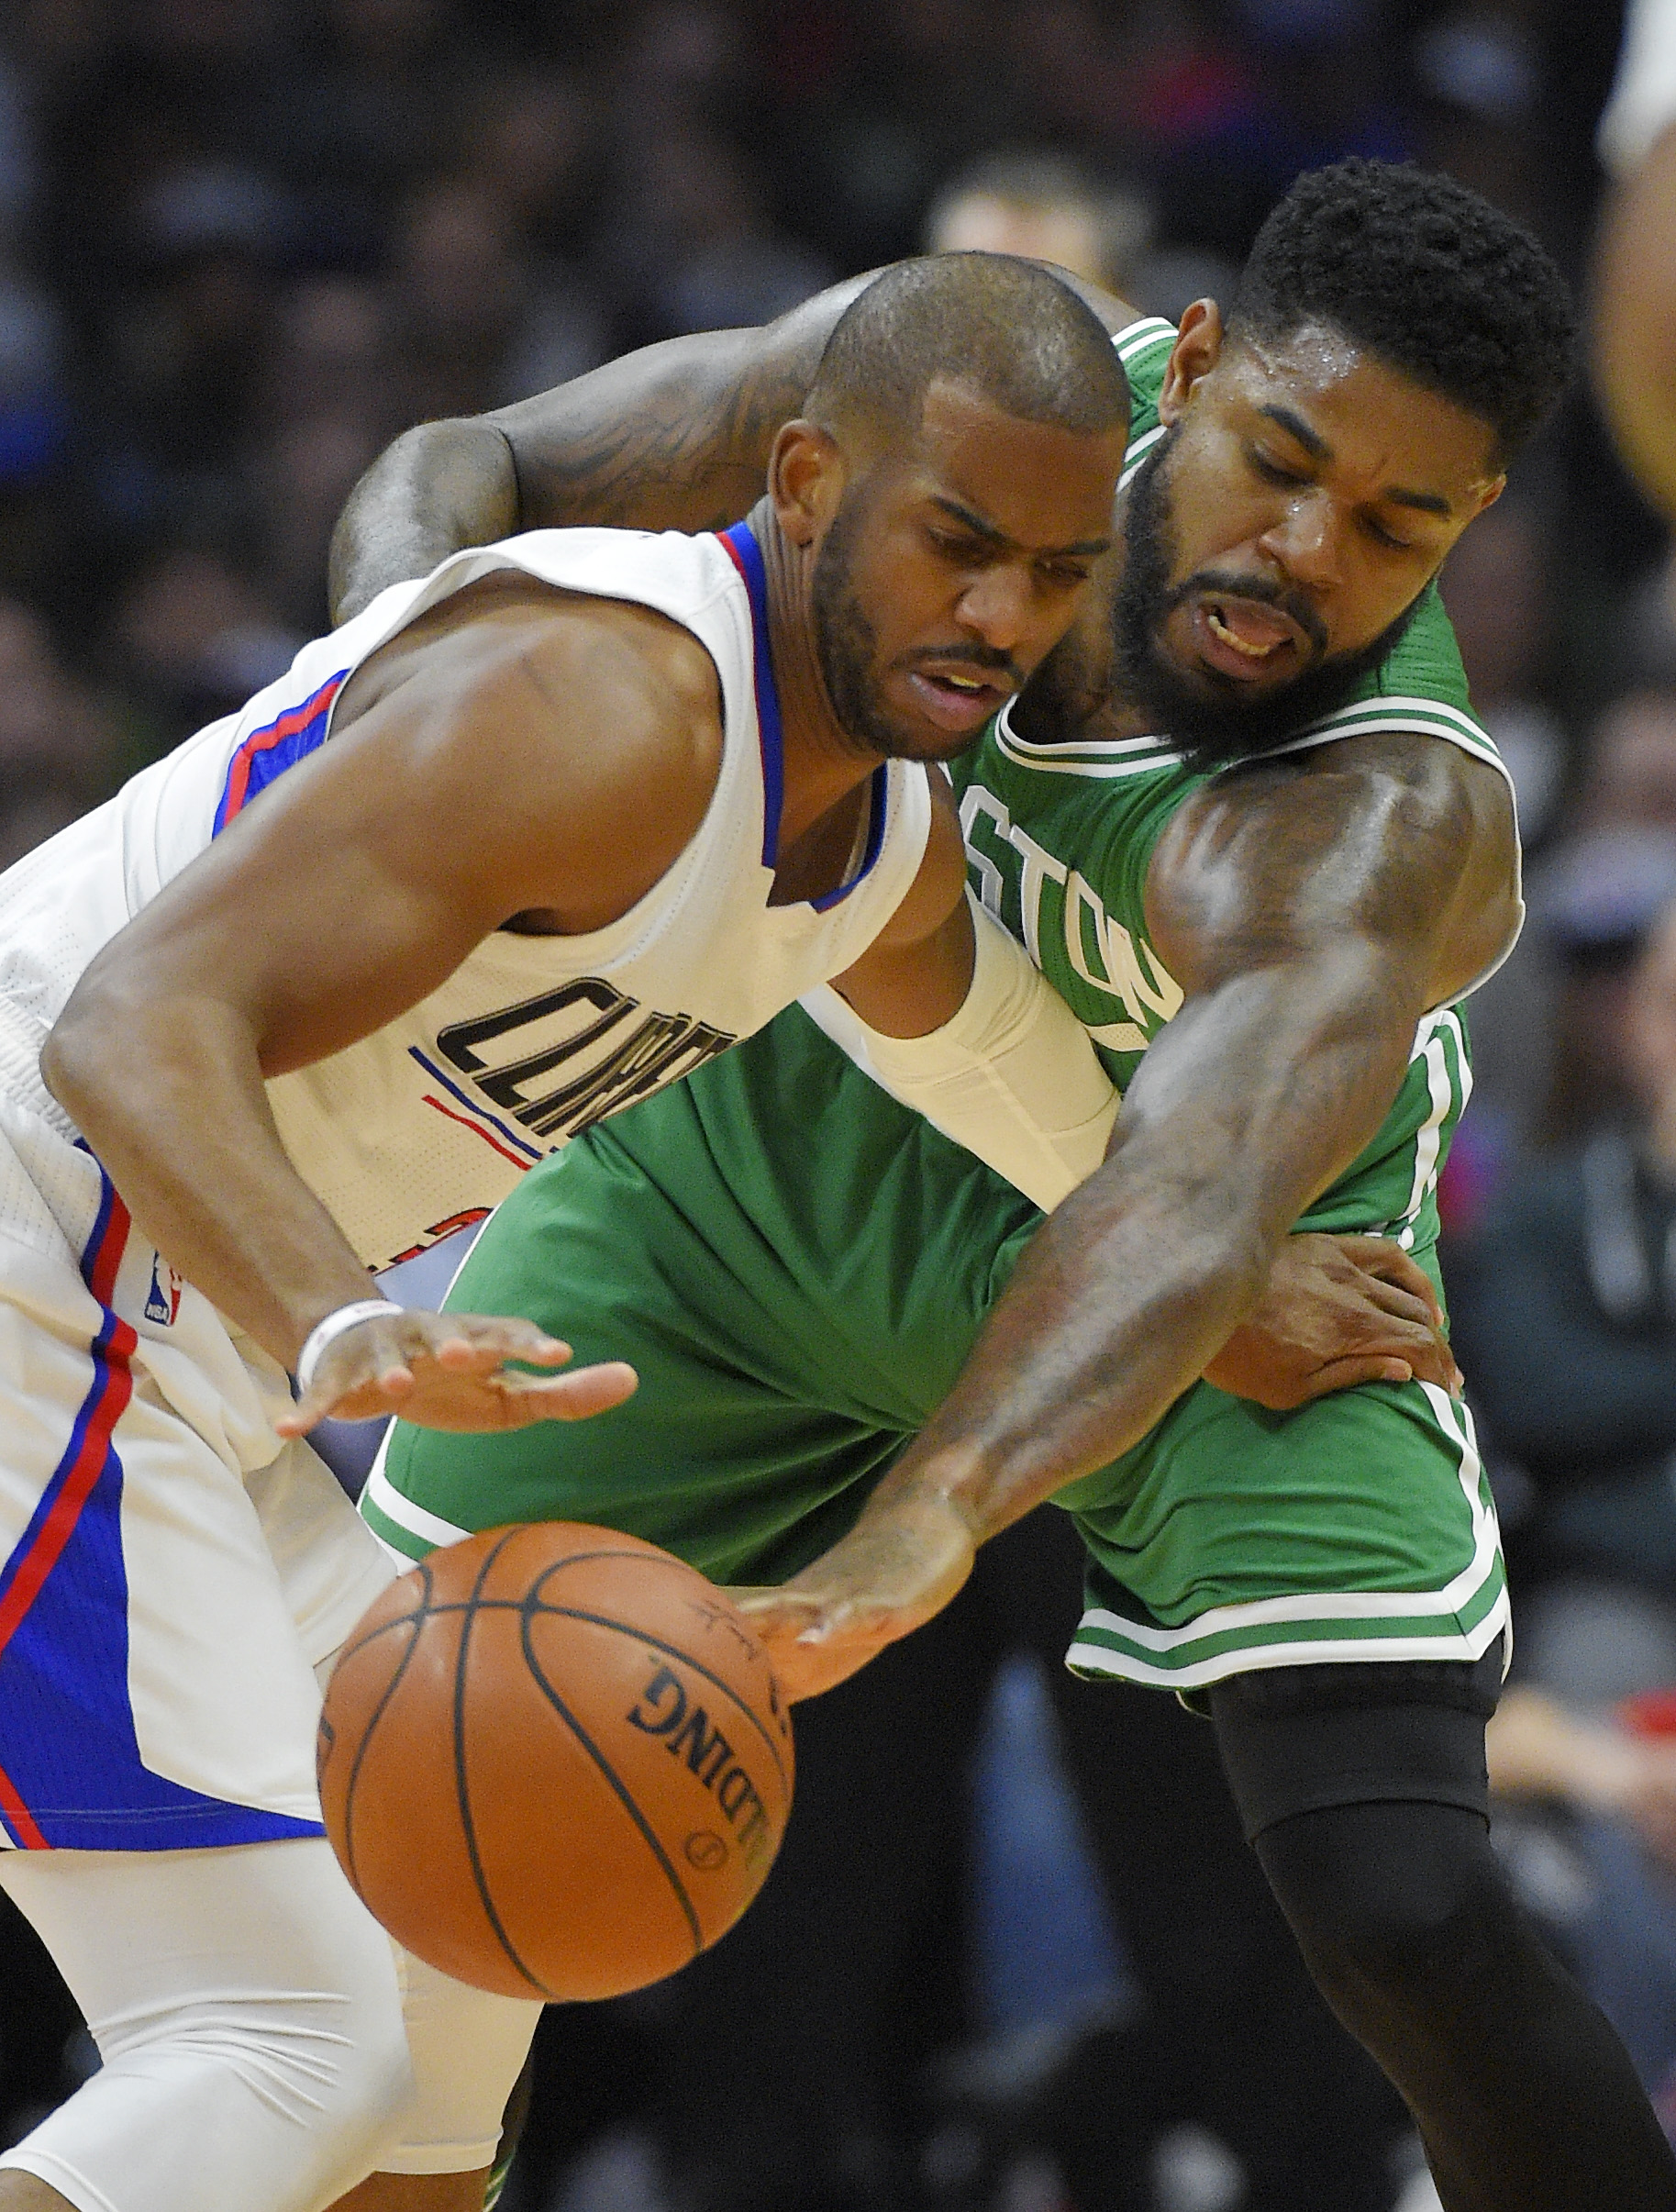 Boston Celtics guard Avery Bradley, right, reaches in on Los Angeles Clippers guard Chris Paul,left, during the first half of an NBA basketball game, Monday, March 28, 2016, in Los Angeles. (AP Photo/Mark J. Terrill)